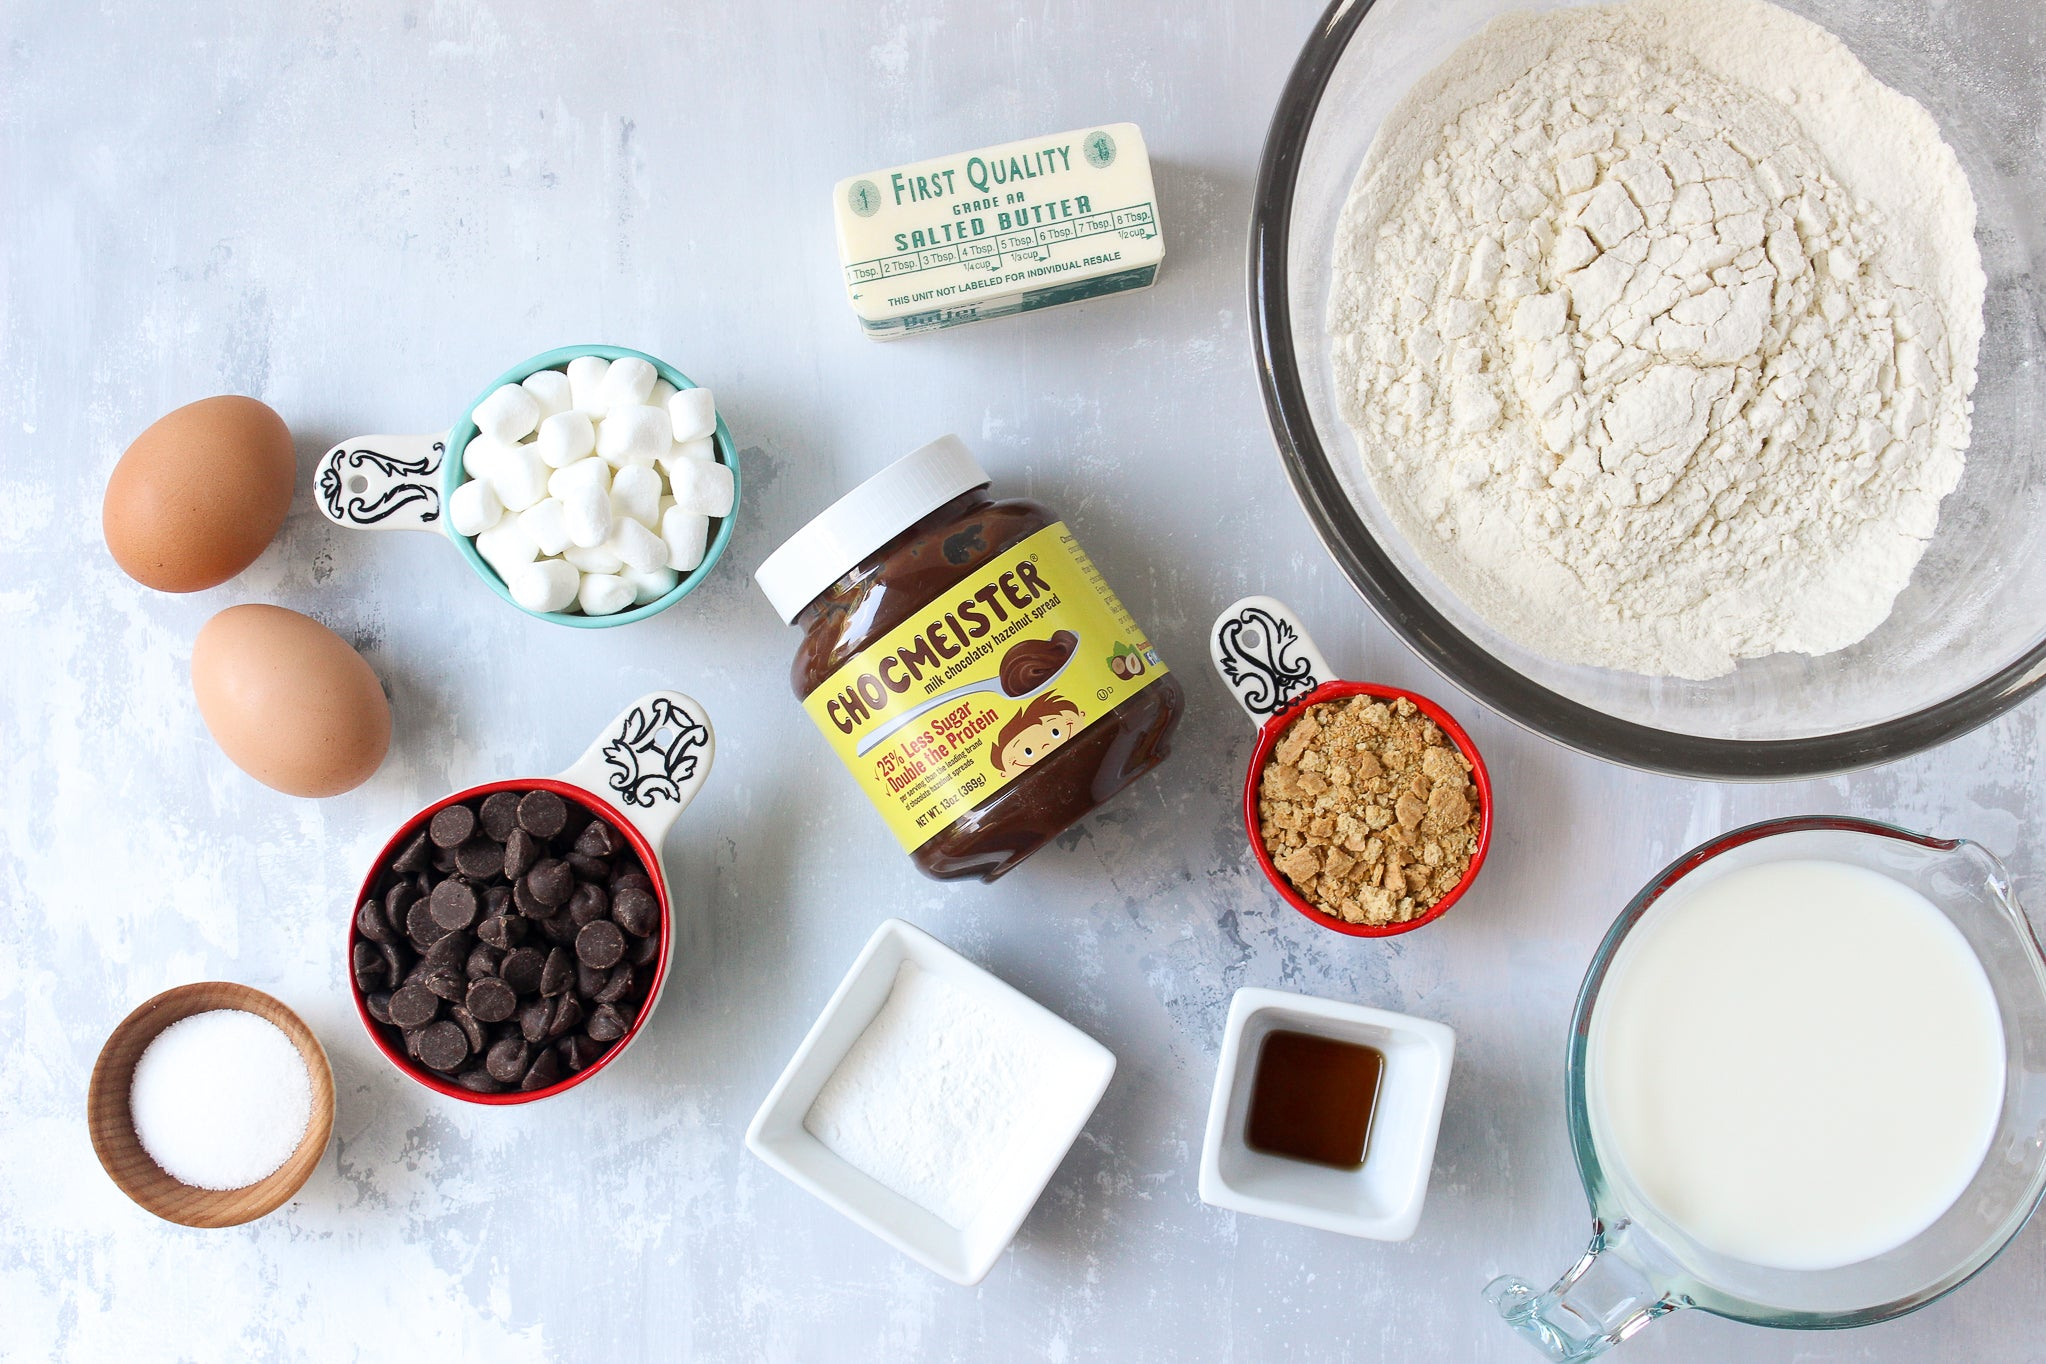 Chocolate Hazelnut Waffle S'mores - Ingredients